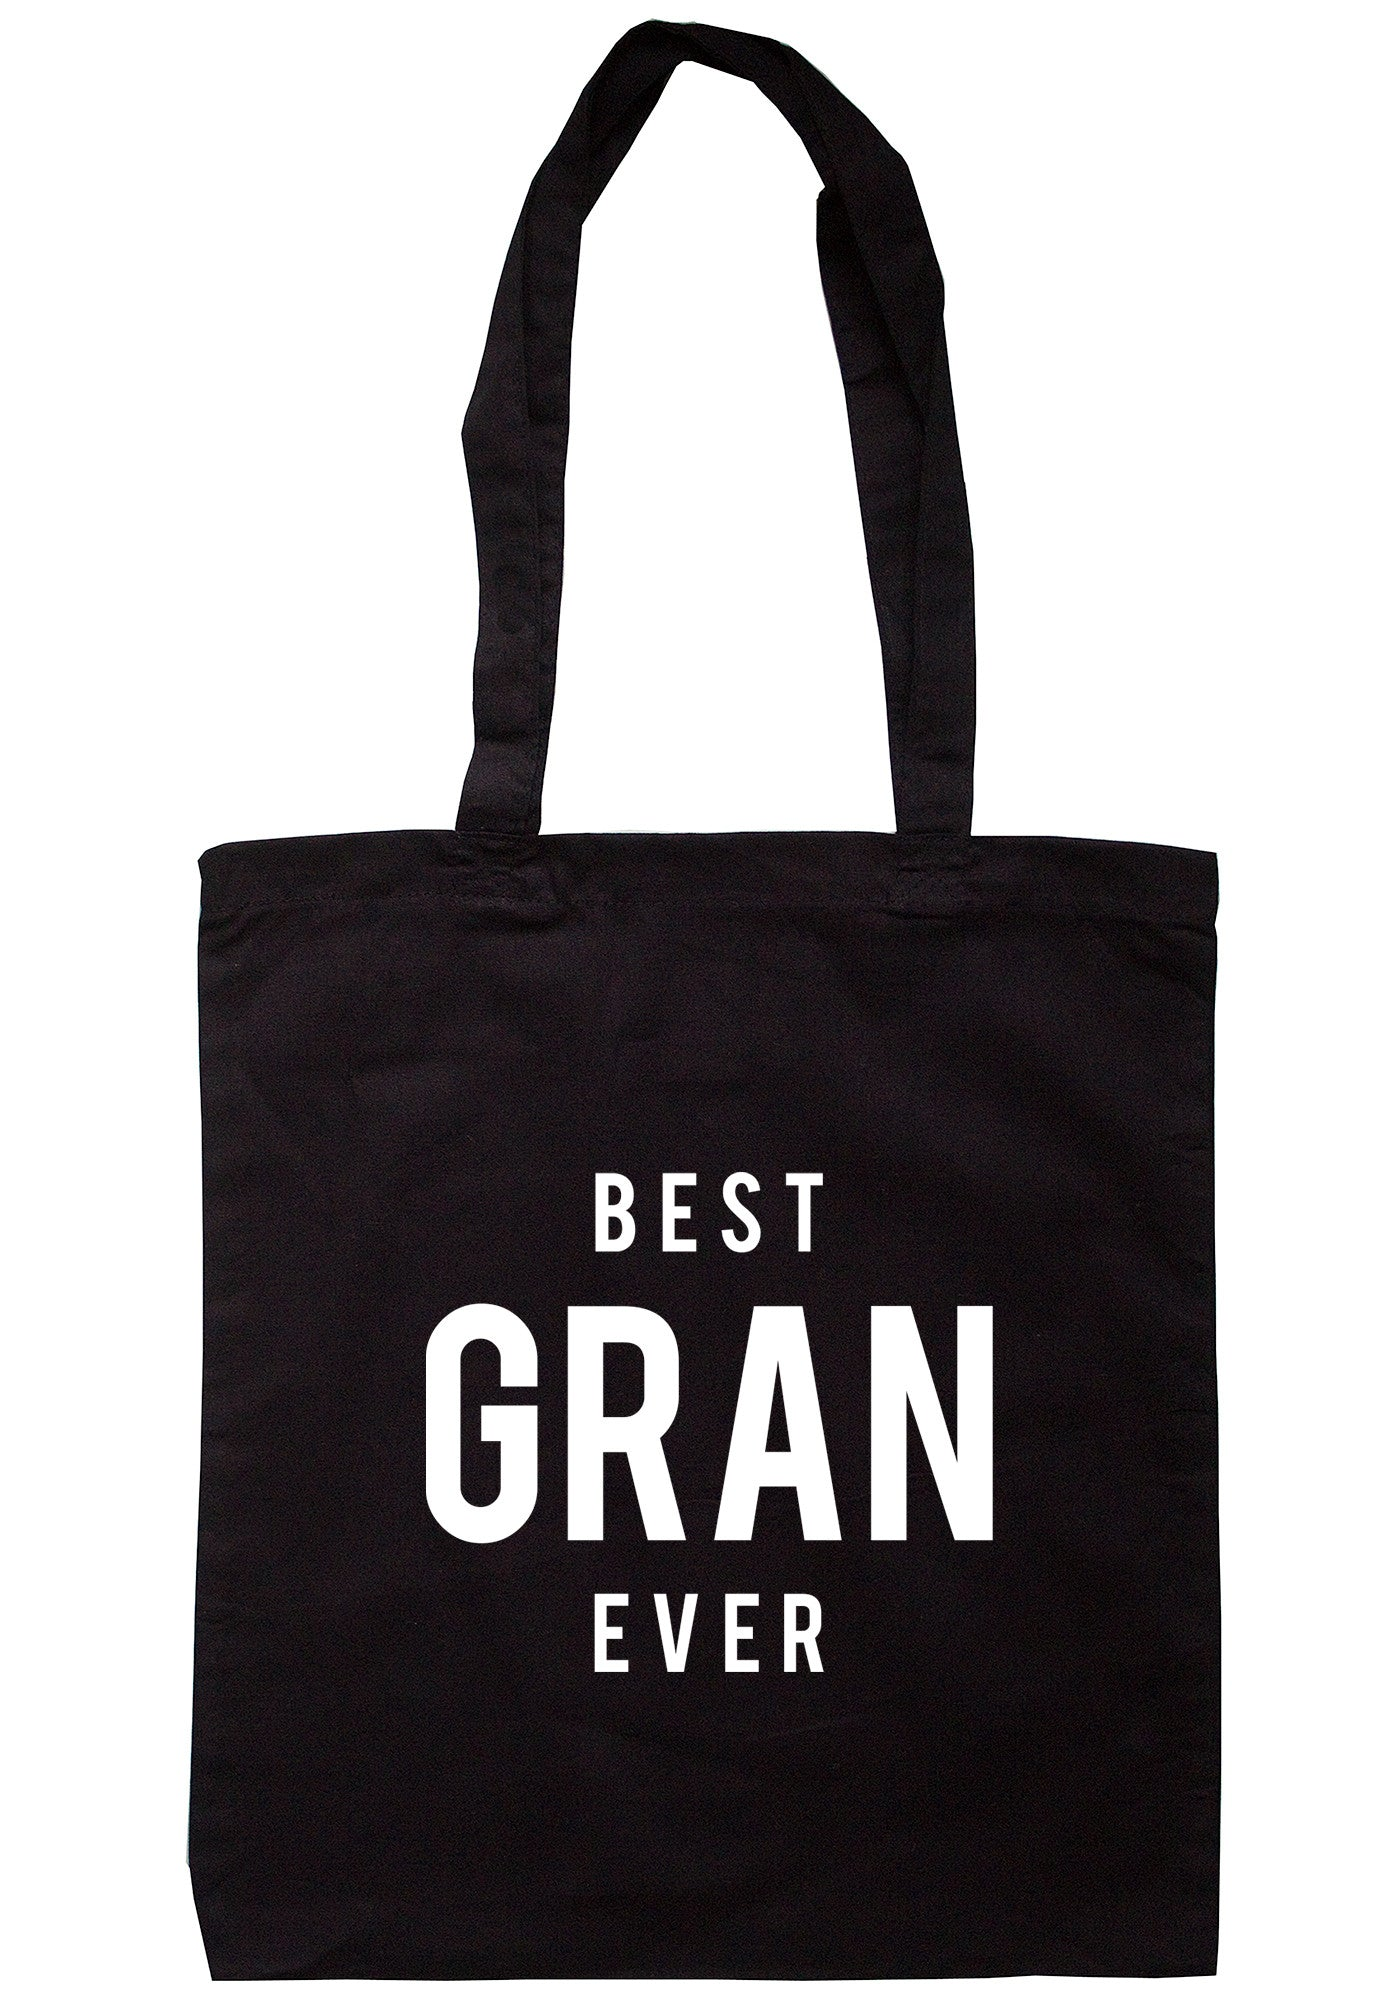 Best Gran Ever Tote Bag TB1250